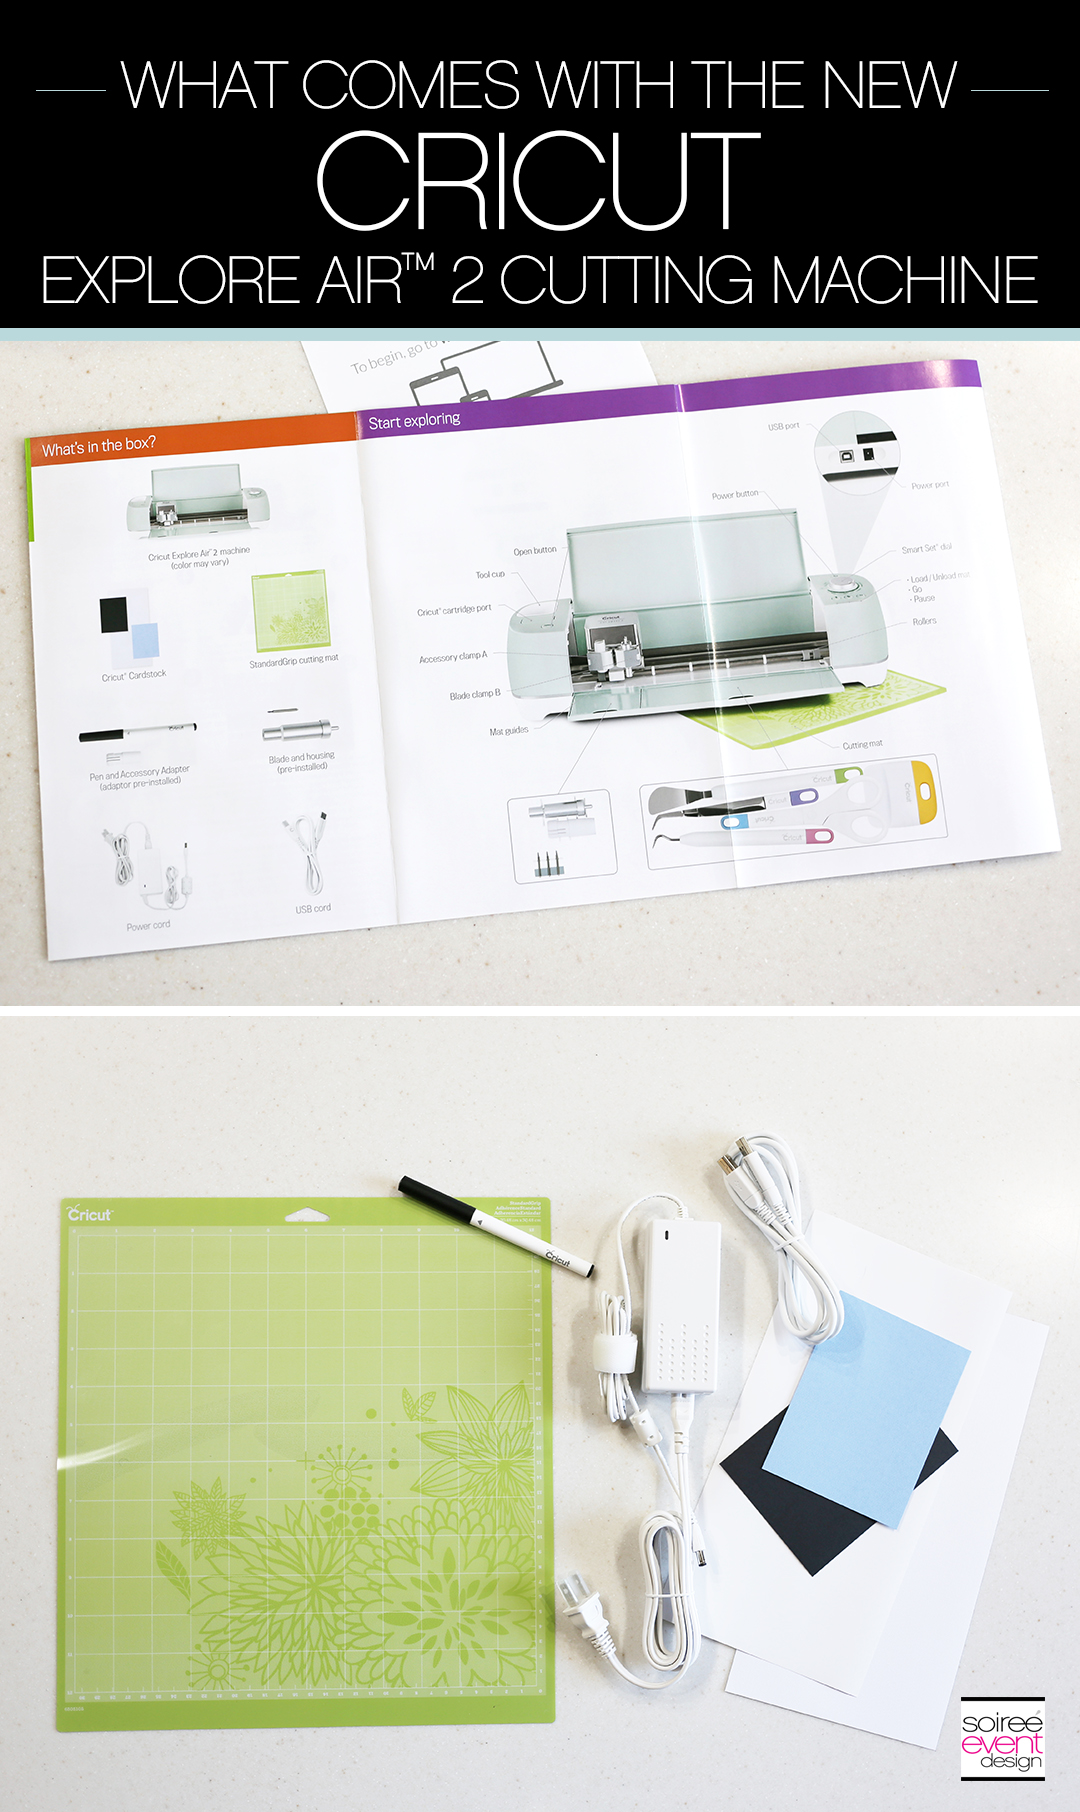 What comes with the New Cricut Explore Air 2